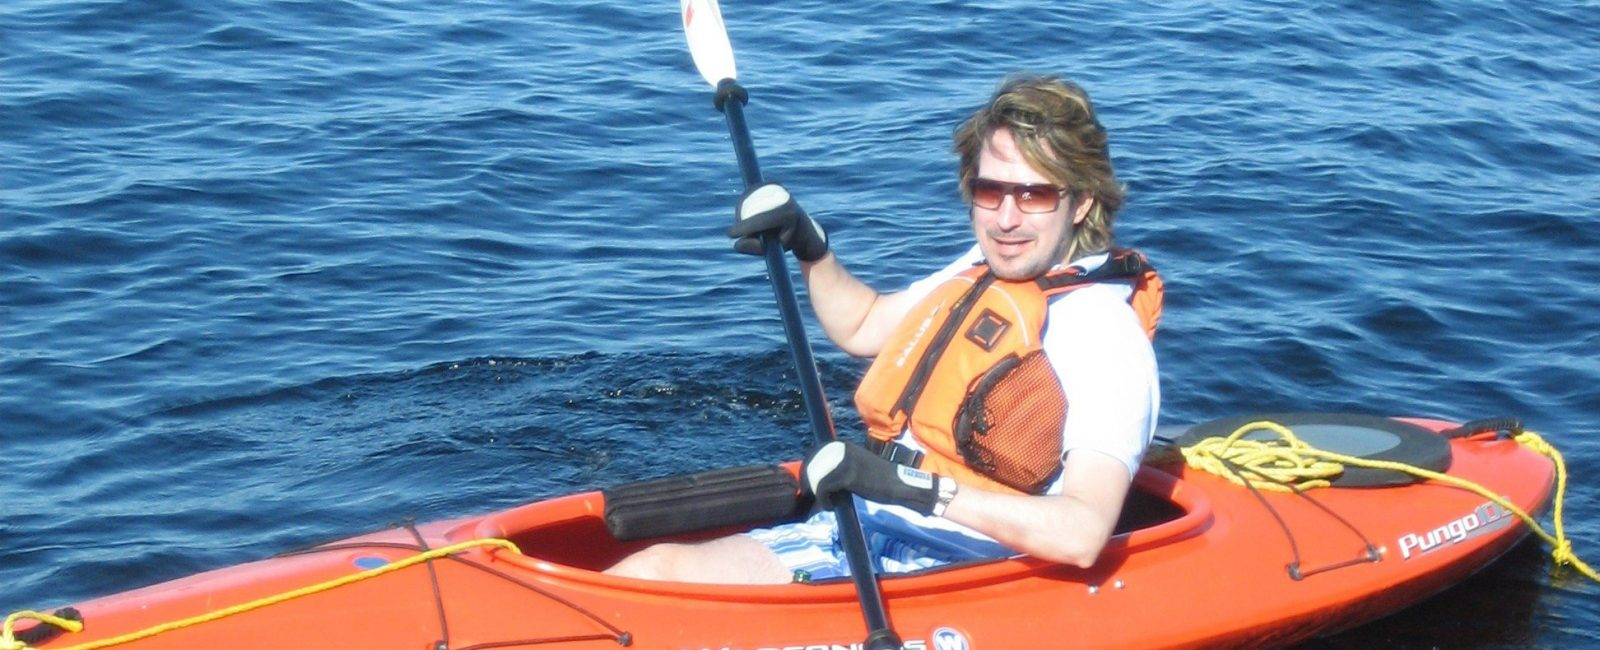 Kayak crop